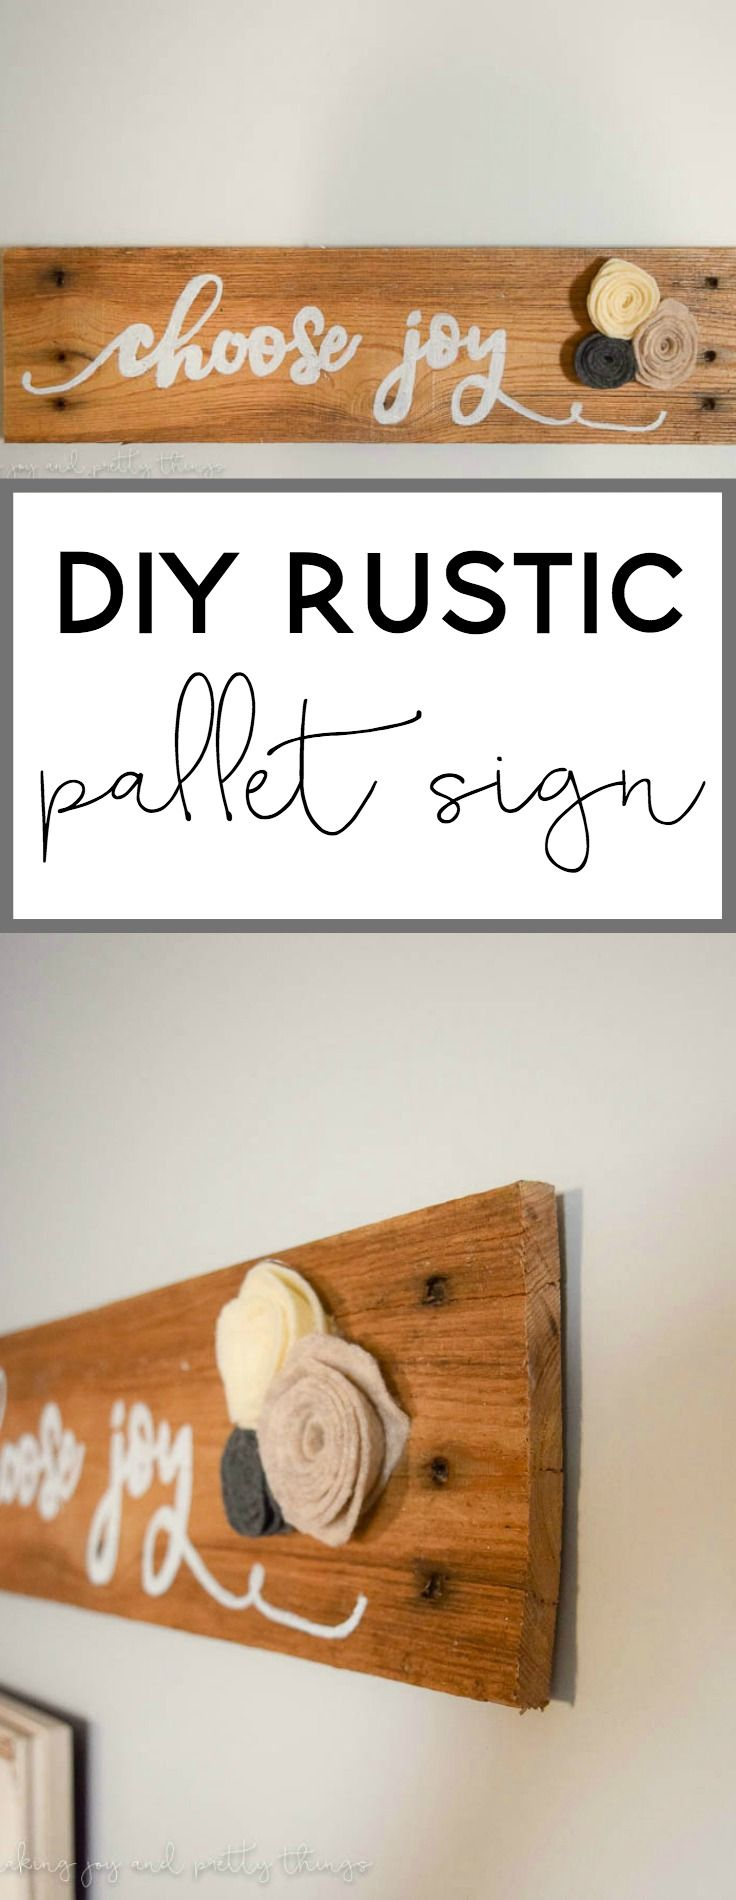 17 Diy Rustic Home Decor Ideas For Living Room: 17 Best Images About New Projects On Pinterest